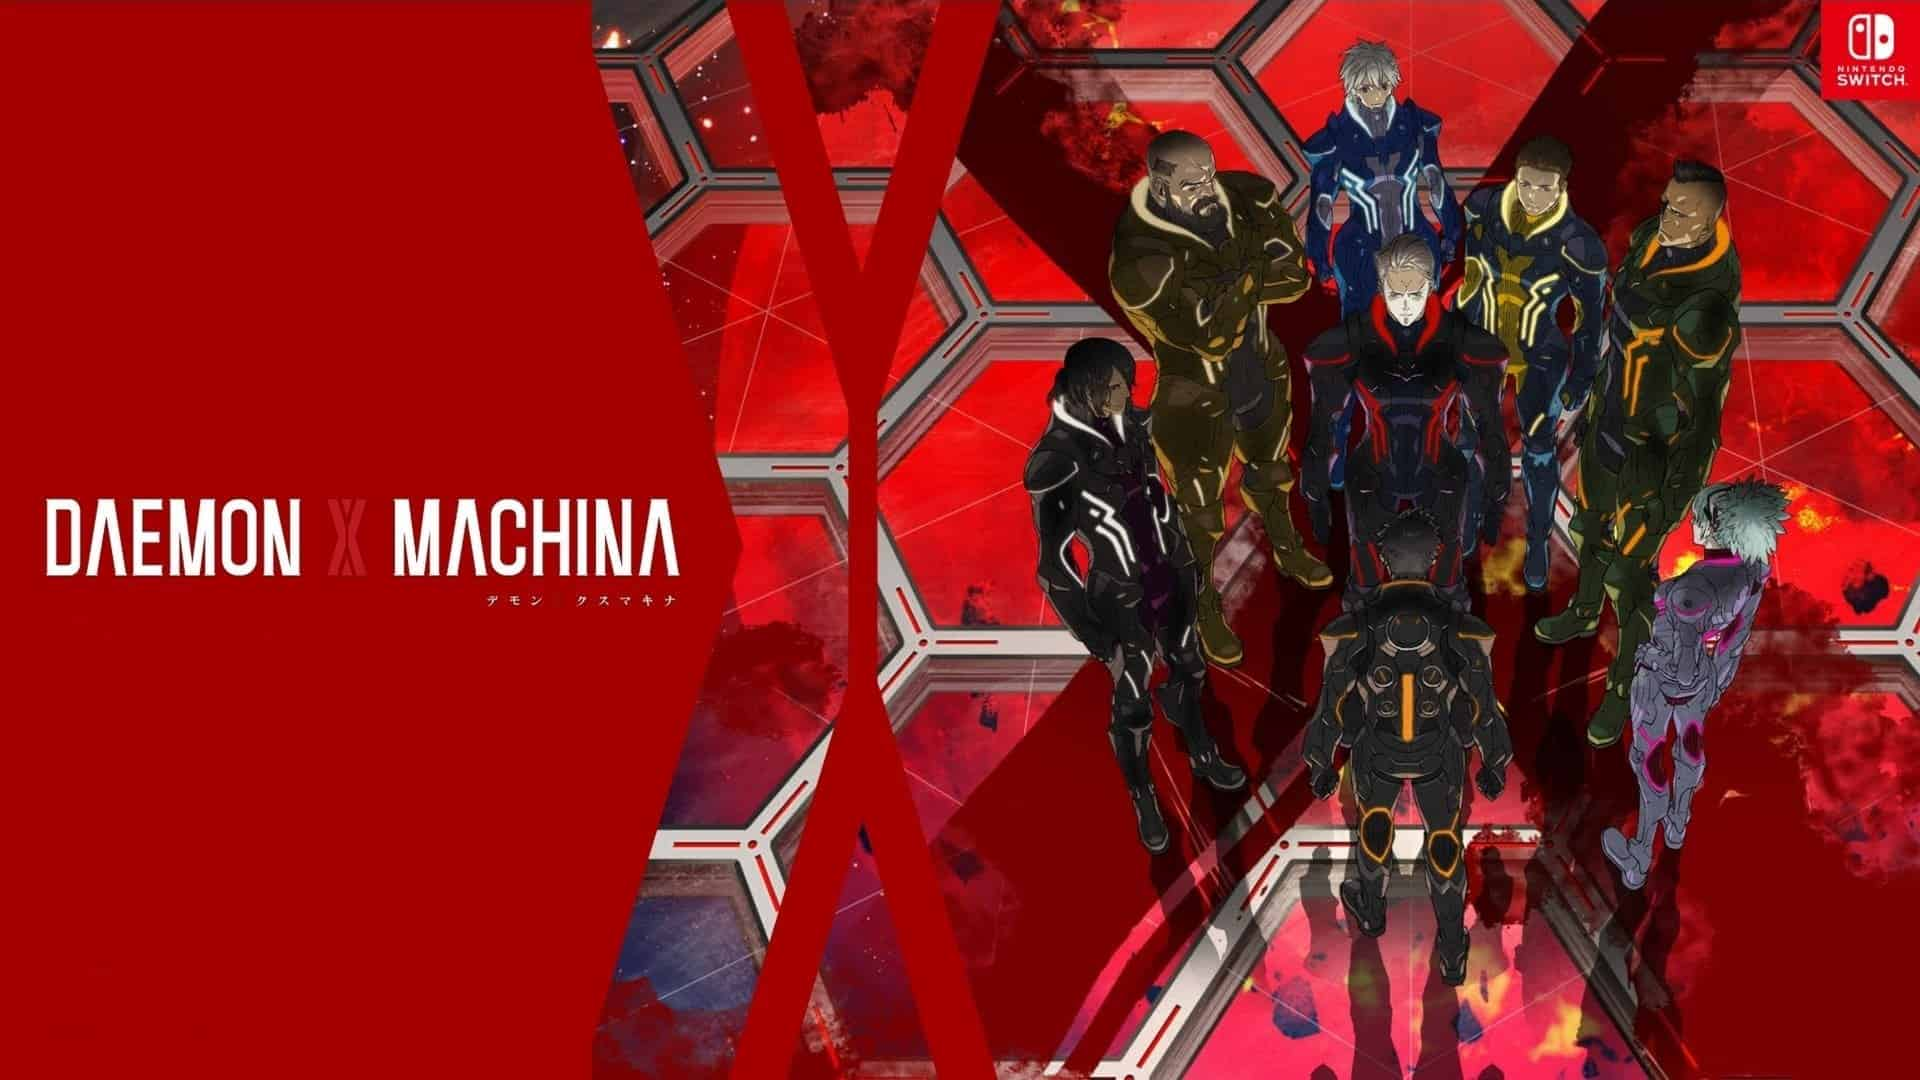 Suit Up, Reclaimers! DAEMON X MACHINA Is Now Available For Nintendo Switch